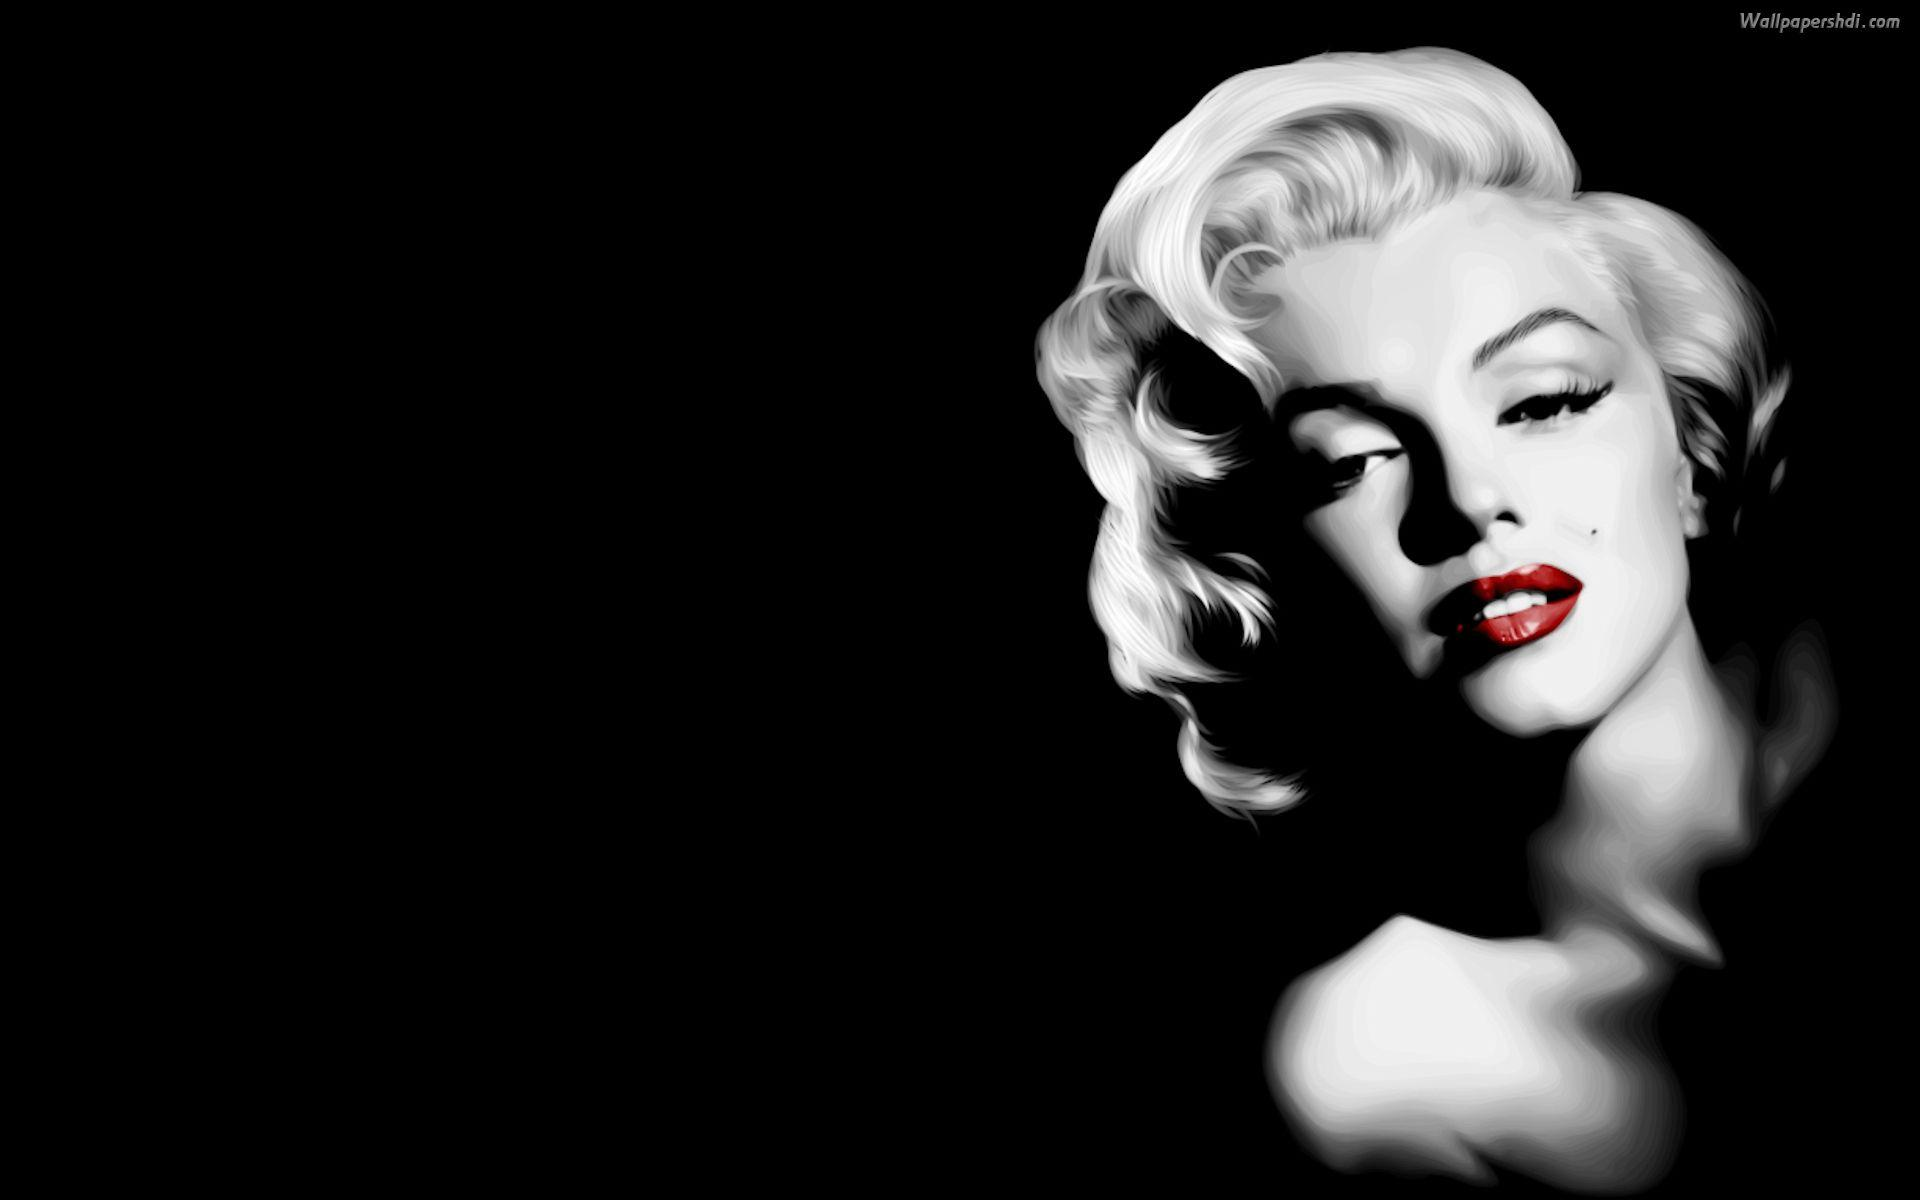 marilyn monroe wallpapers for android